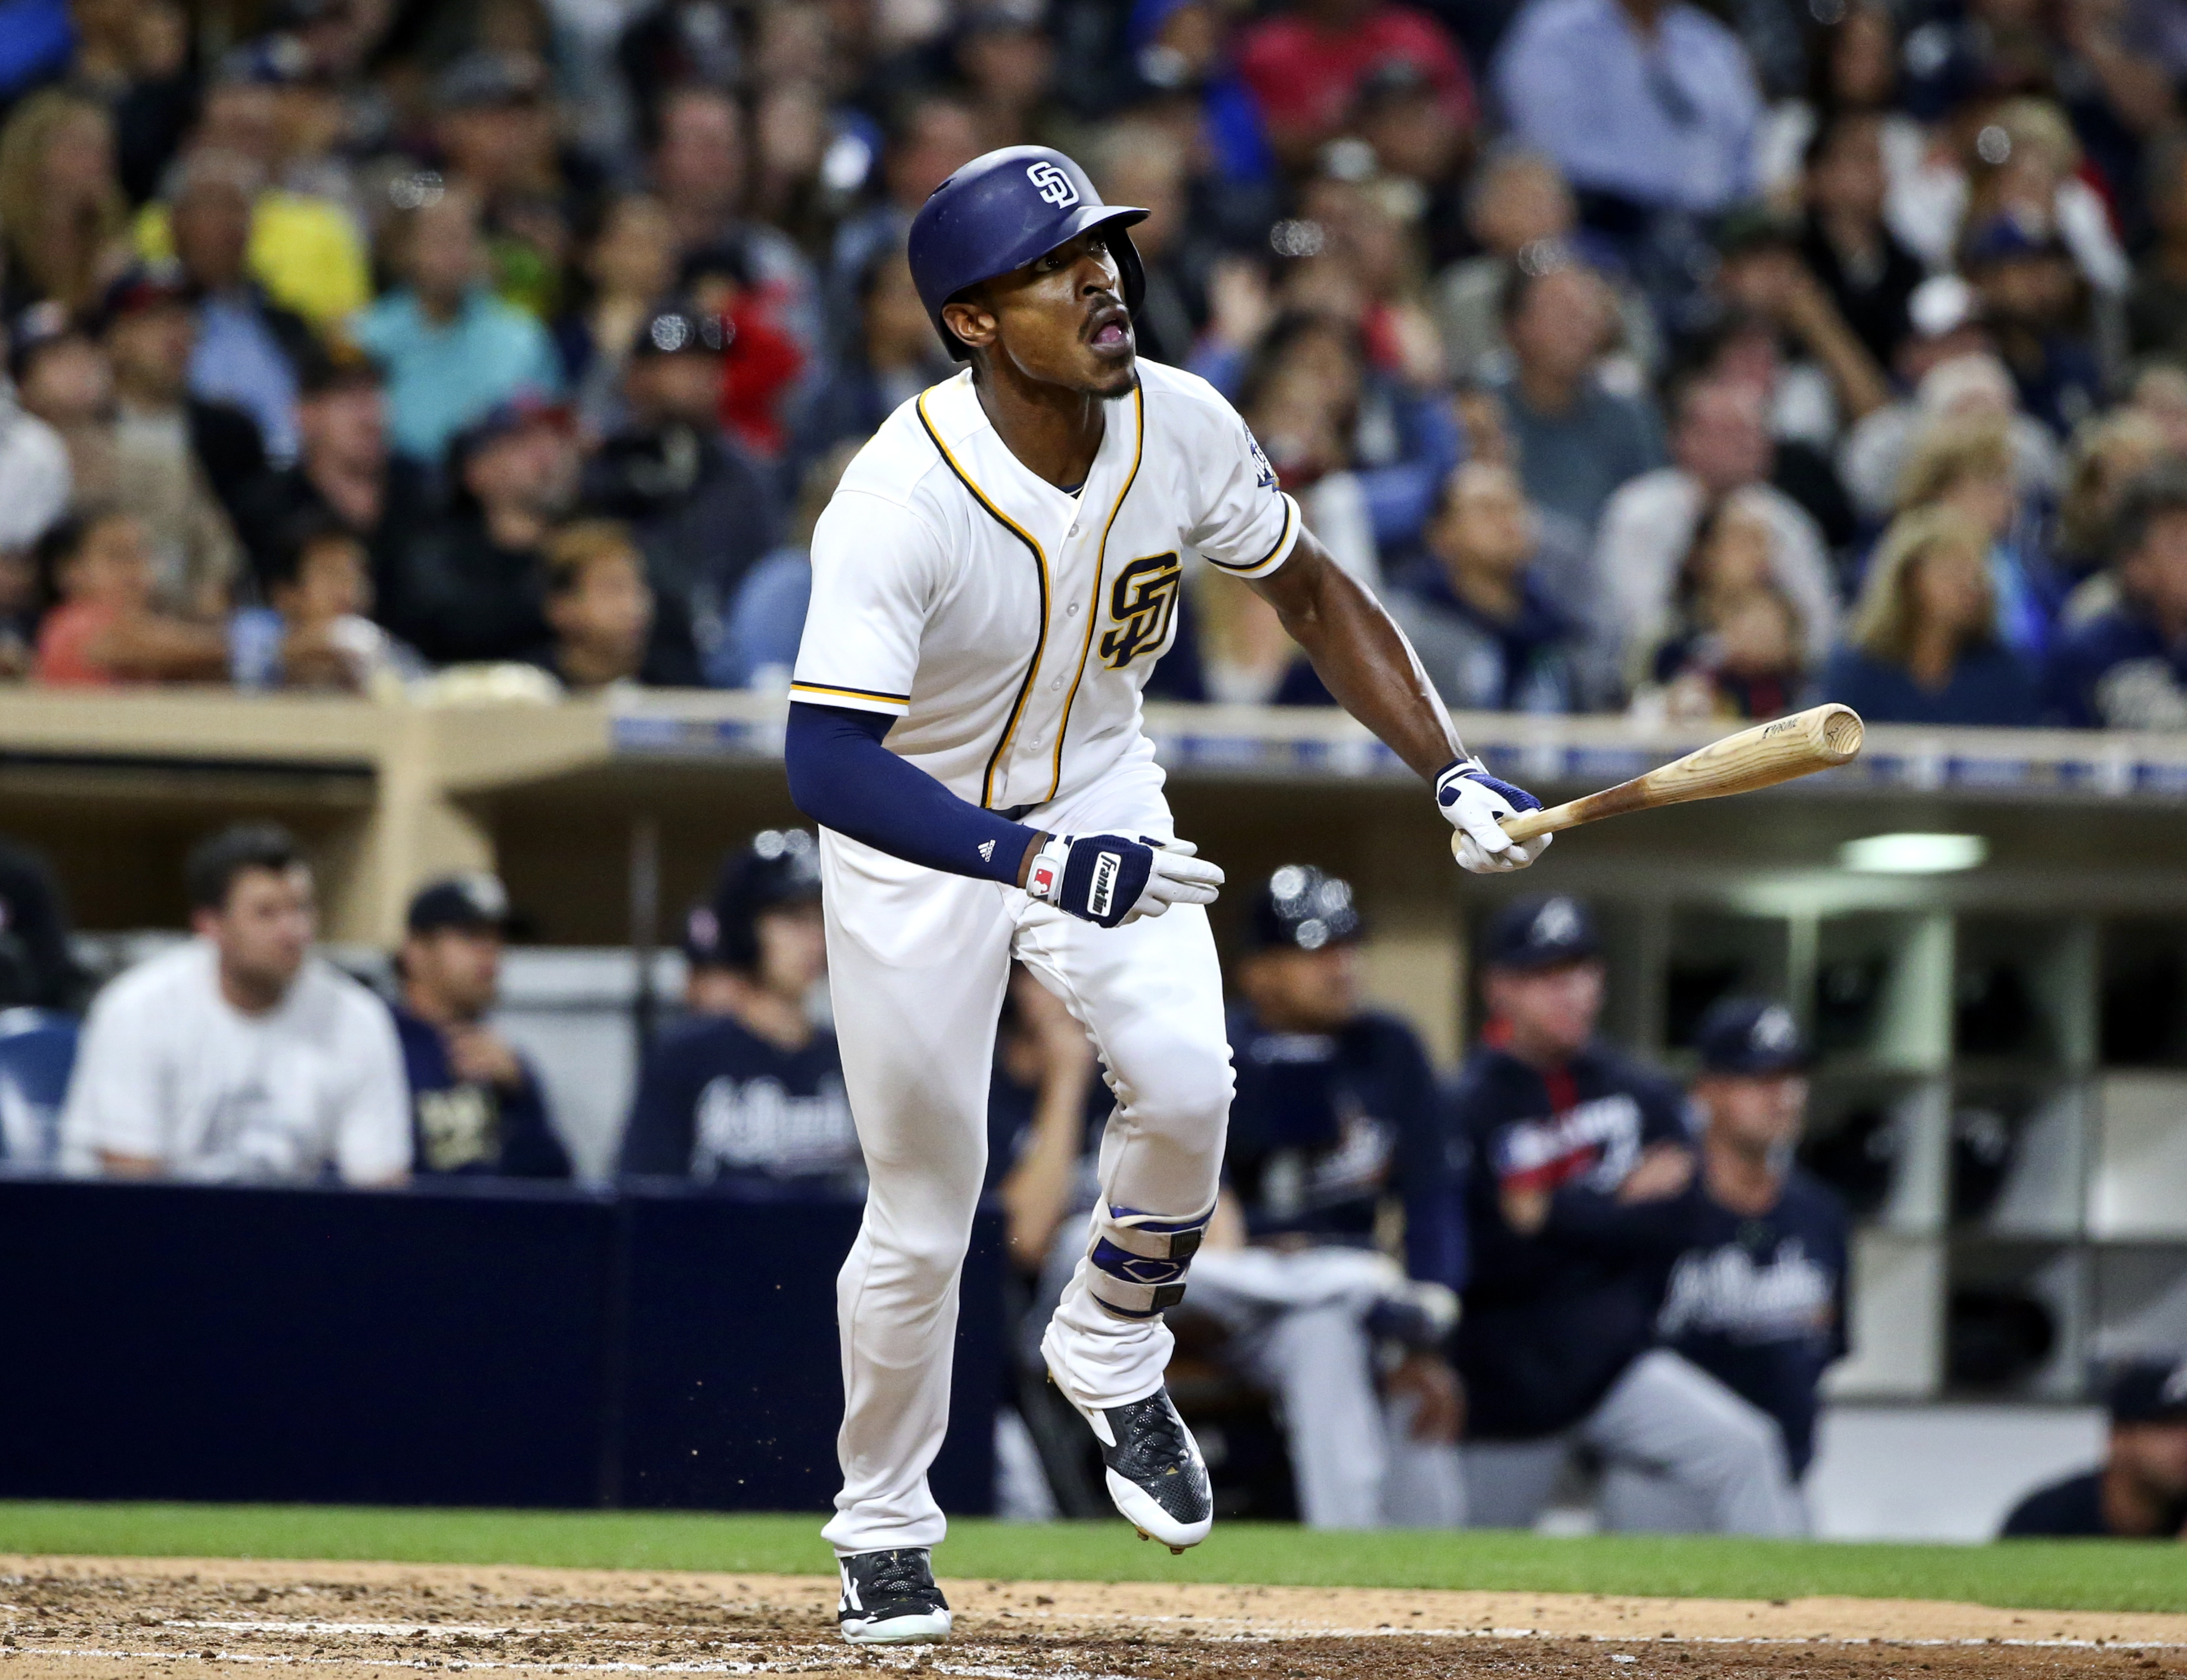 FILE - In this June 7, 2016, file photo, San Diego Padres' Melvin Upton Jr. watches his RBI line-out against the Atlanta Braves during the fifth inning of a baseball game, in San Diego. The Padres have traded left fielder Melvin Upton Jr. to the Toronto B